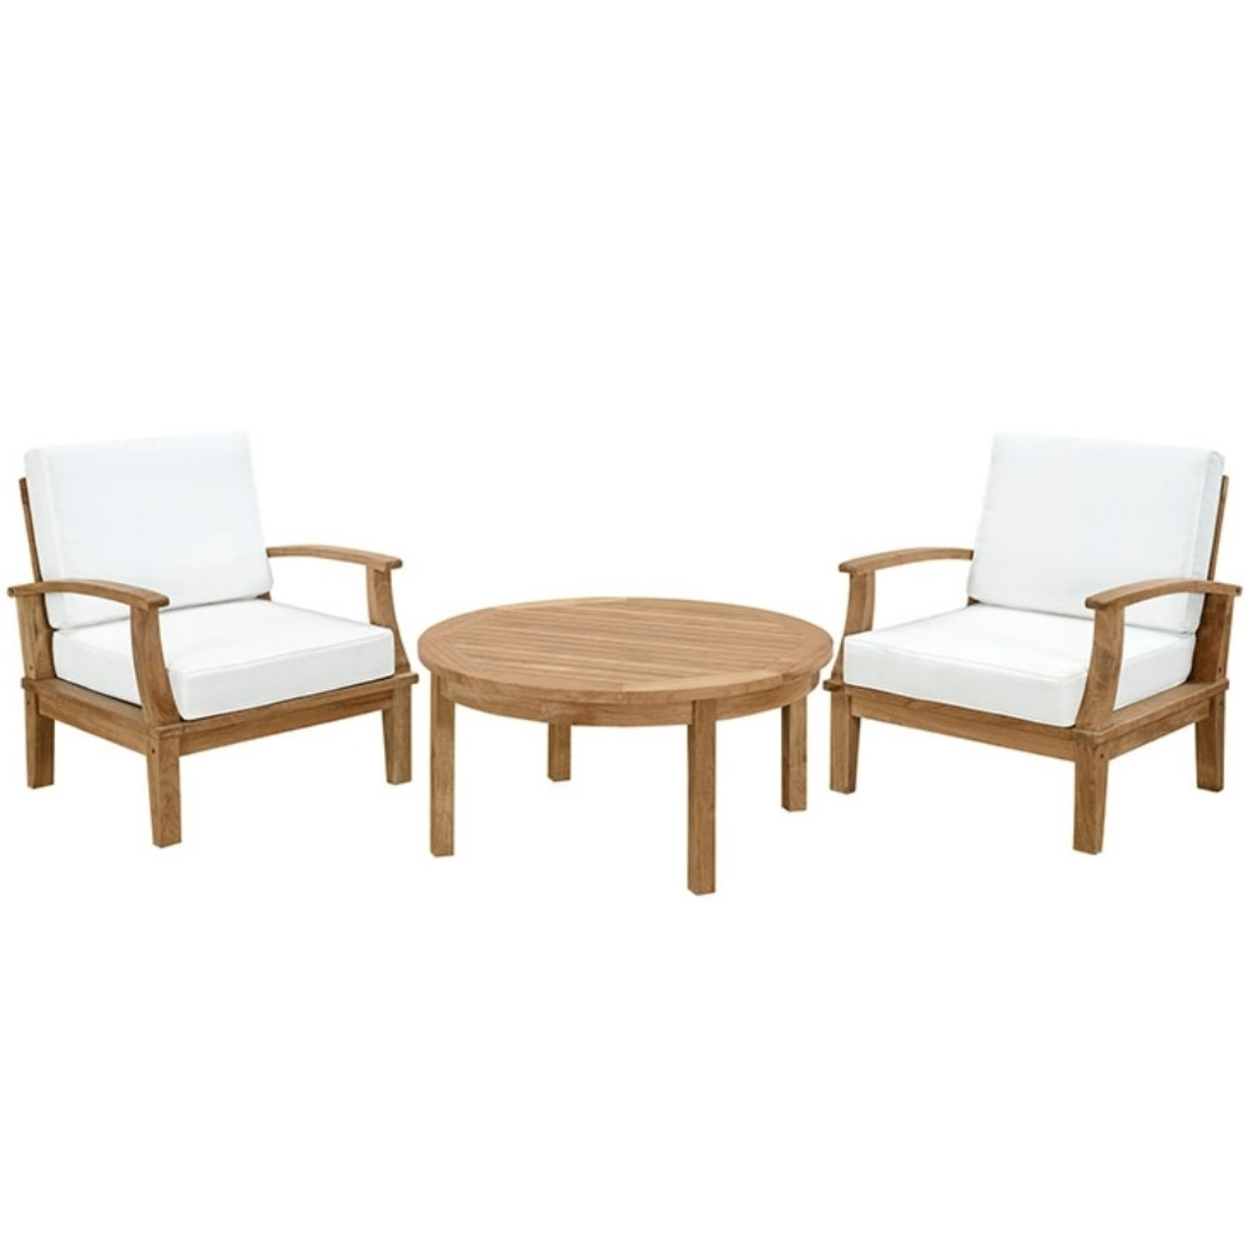 Marina 3 Piece Outdoor Patio Teak Sofa Set, Natural White 5a0c04c82a00e40dff15468a